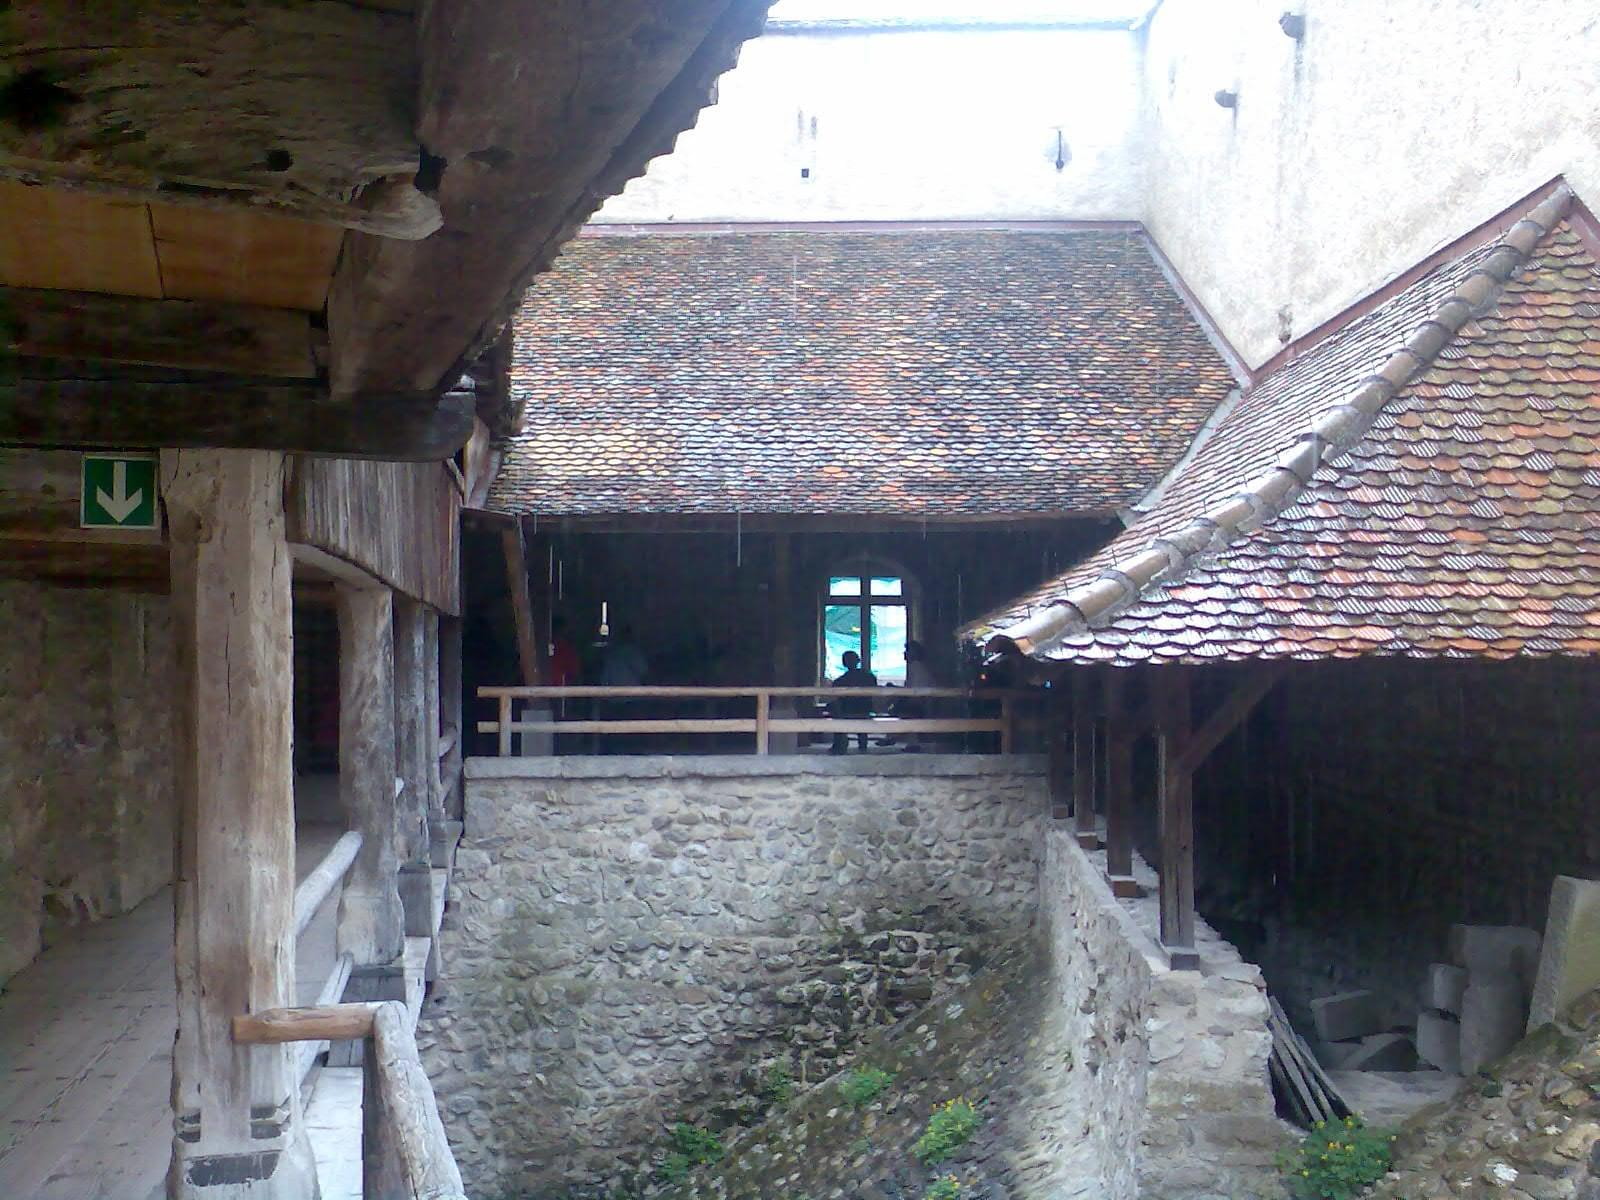 chateau-de-chillon-7089